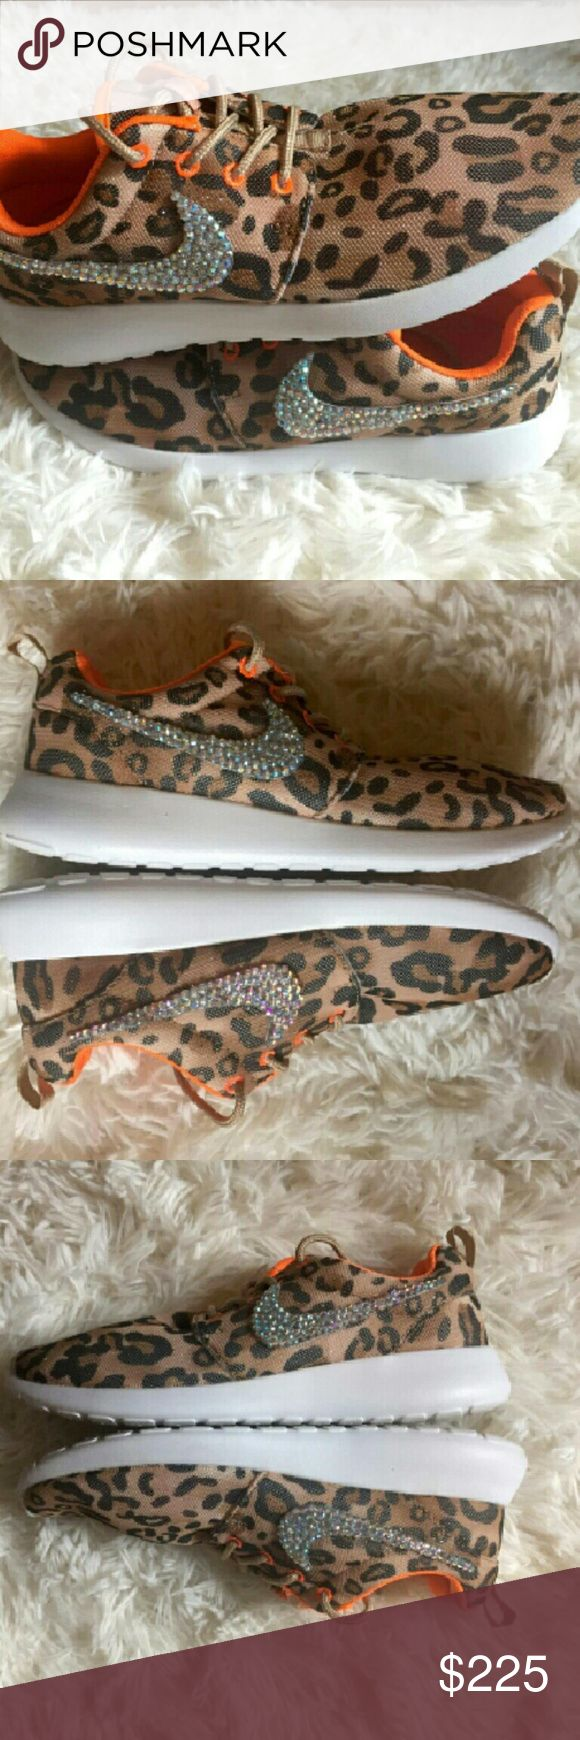 Super rare limited edition nike leopard roshe run Only worn once. Fresh brand new swavorski crystals. Warranty on crystals. You won't find these anywhere. Extremely rare leopard/hunter orange nike roshe run tennis shoes. Size 8/run like a 8.5. One of a kind Christmas present. Come with box. Nike Shoes Athletic Shoes